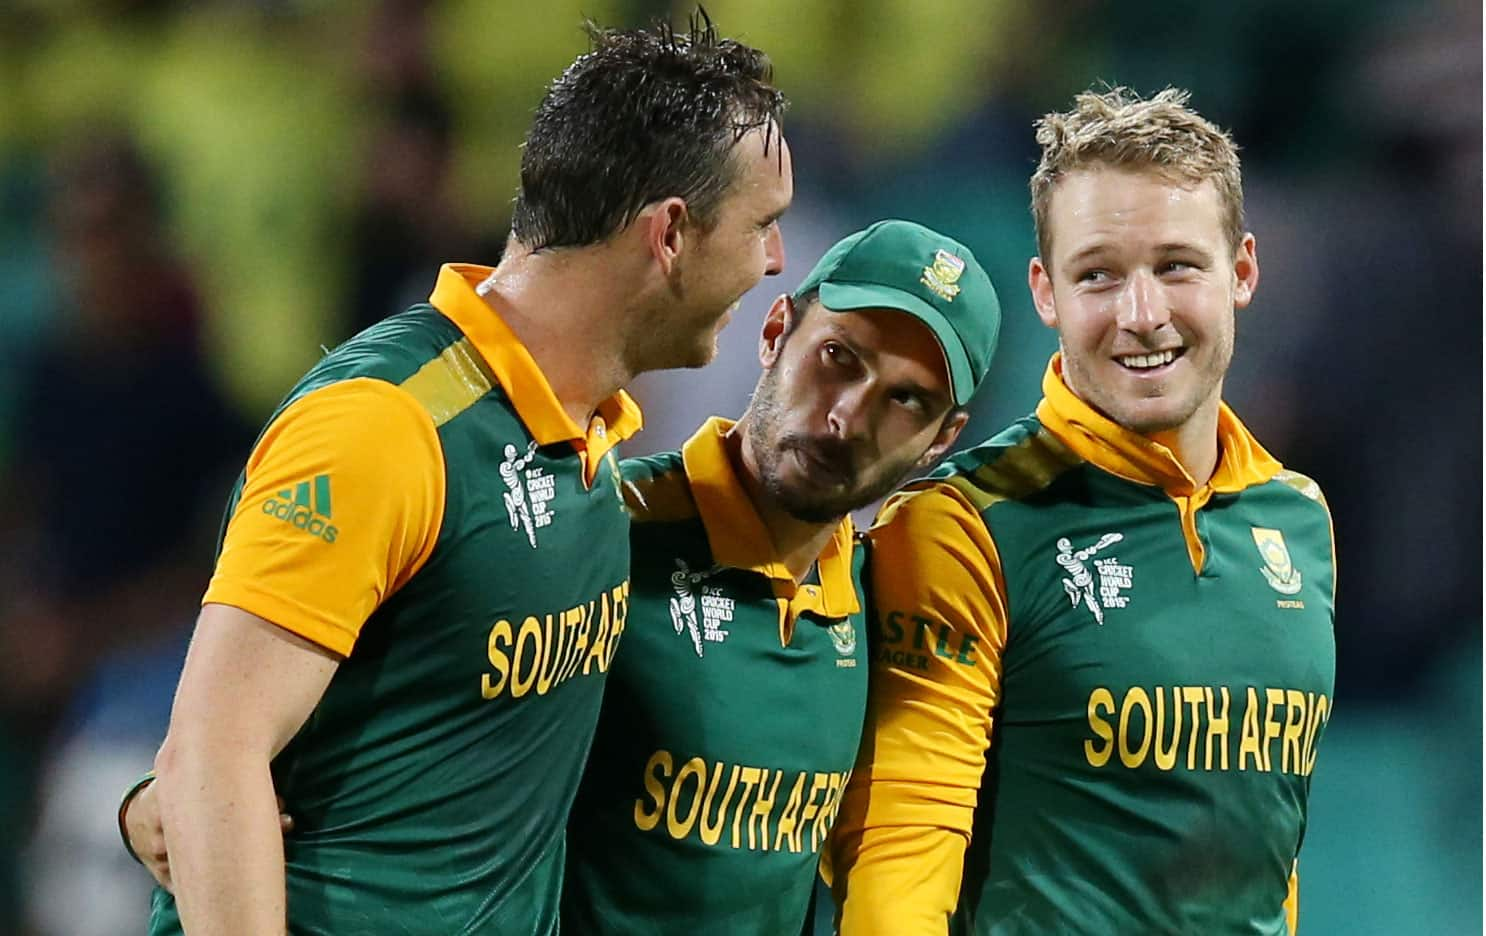 South African players from, Kyle Abbott, Farhaan Behardien, and David Miller celebrate after they defeated the West Indies by 257 runs in their Cricket World Cup Pool B match in Sydney, Australia.